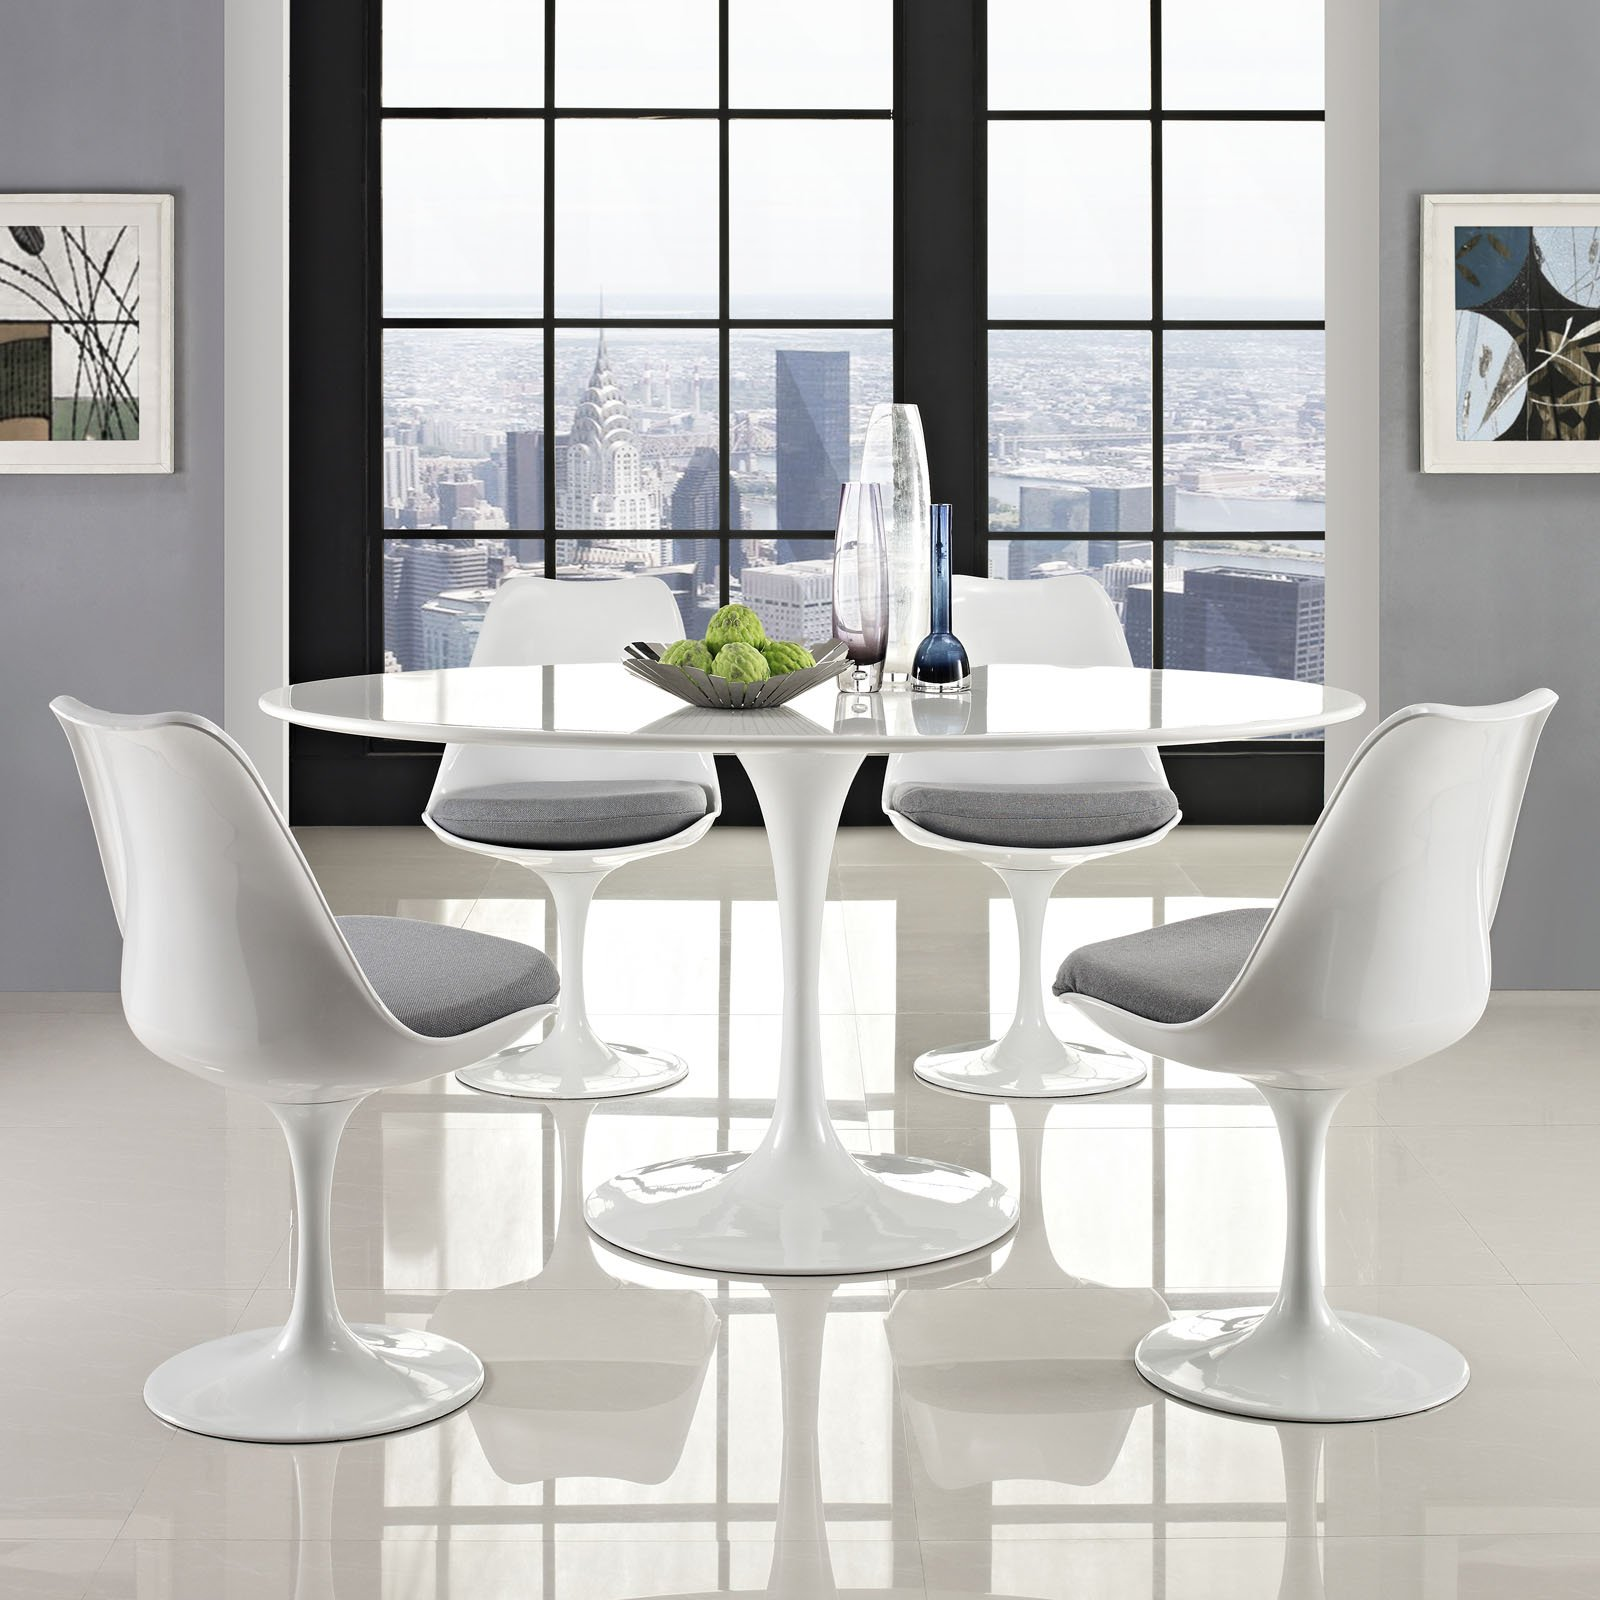 Modway Lippa 60'' Mid-Century Modern Kitchen and Dining Table with Oval Top and Pedestal Base in White by Modway (Image #4)